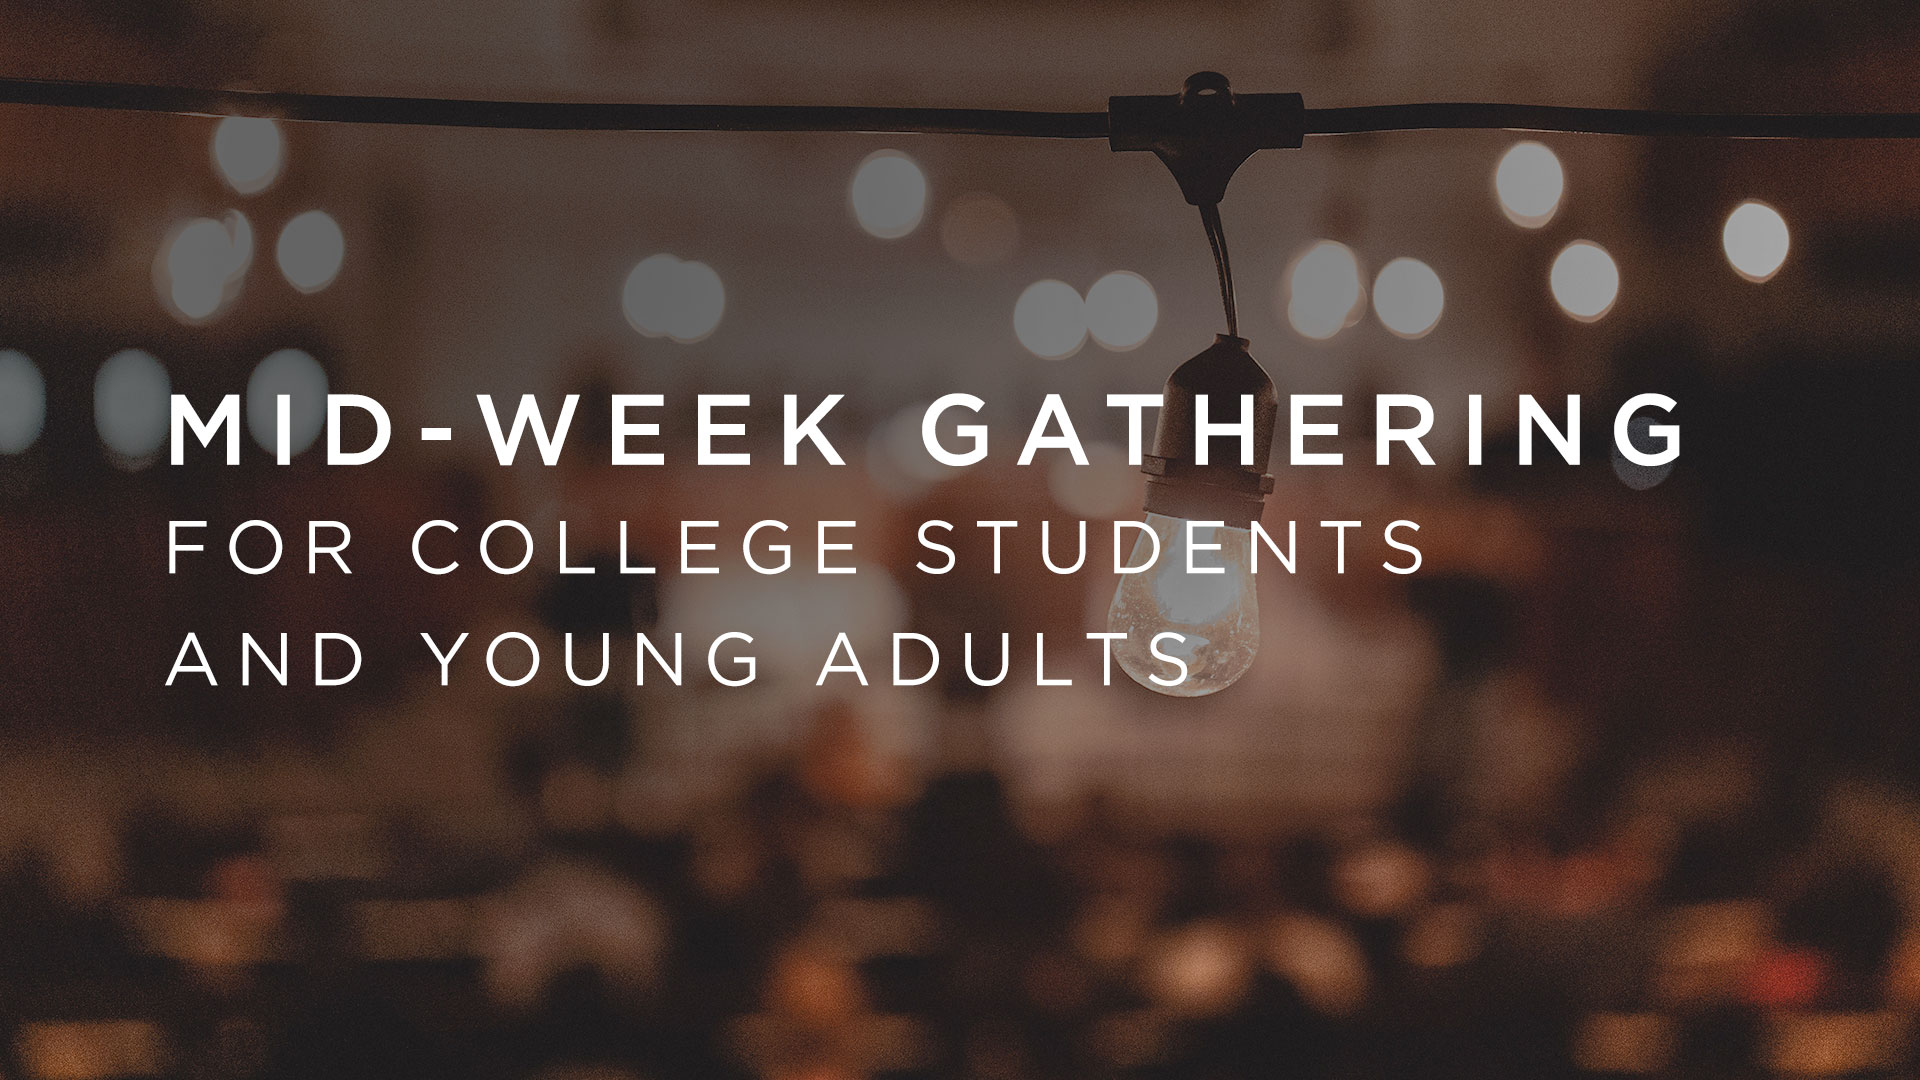 midweek-gathering-college-banner.jpg